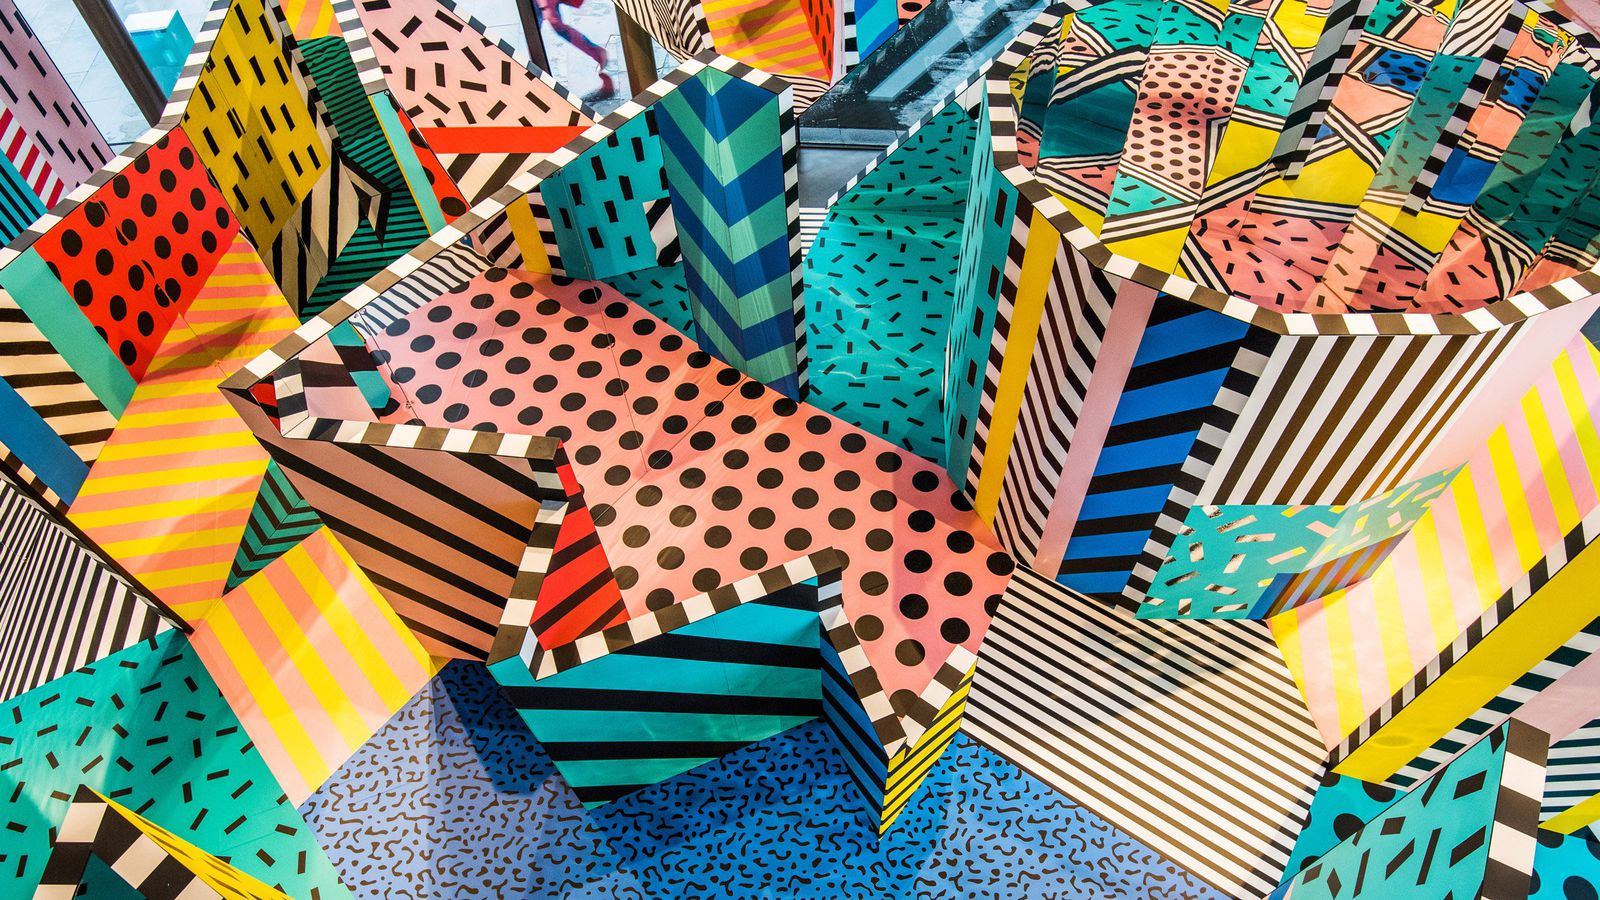 Camille Walala S Colorful New Exhibition Is A Memphis